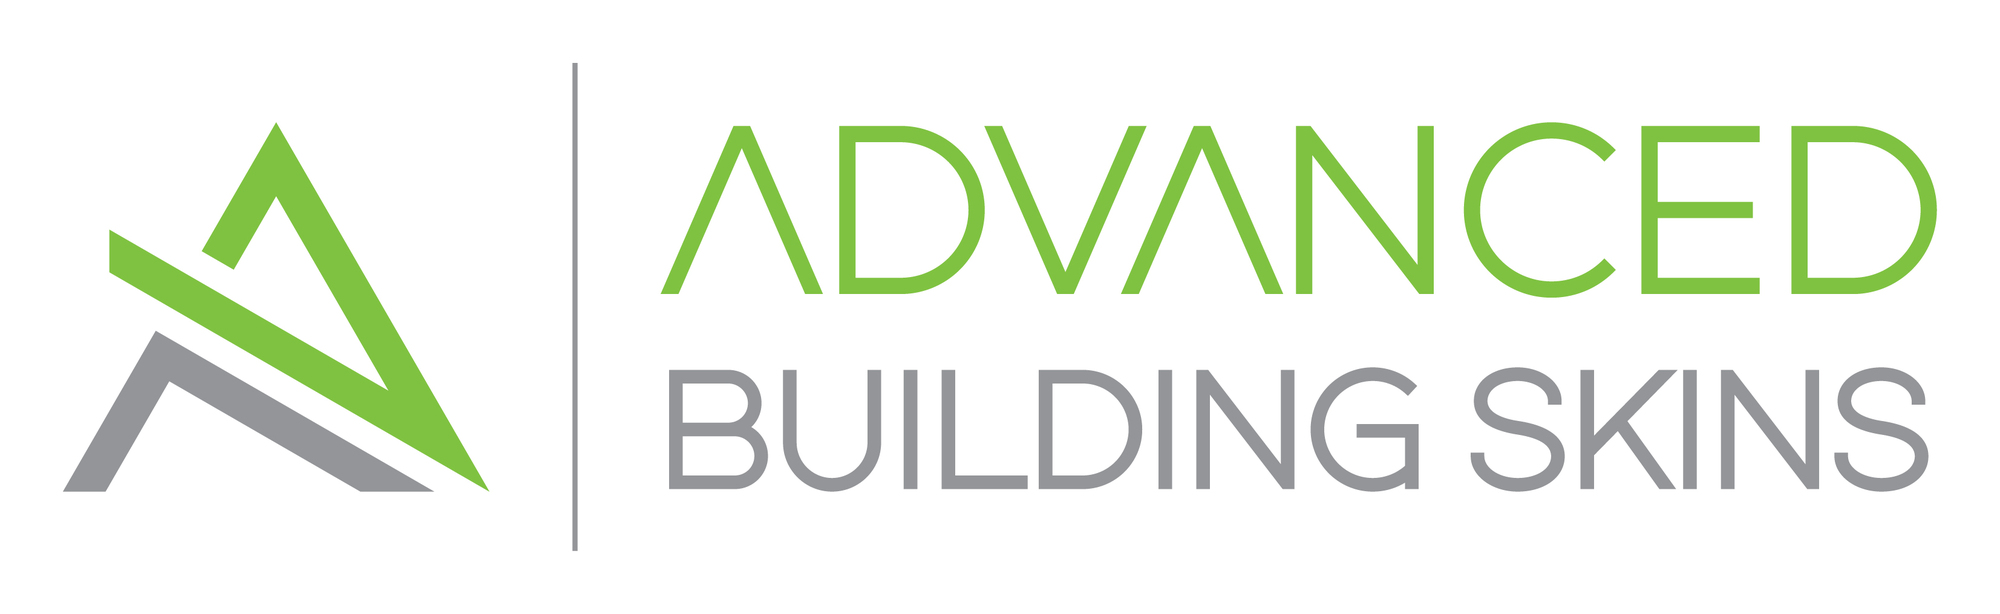 16th Advanced Building Skins Conference